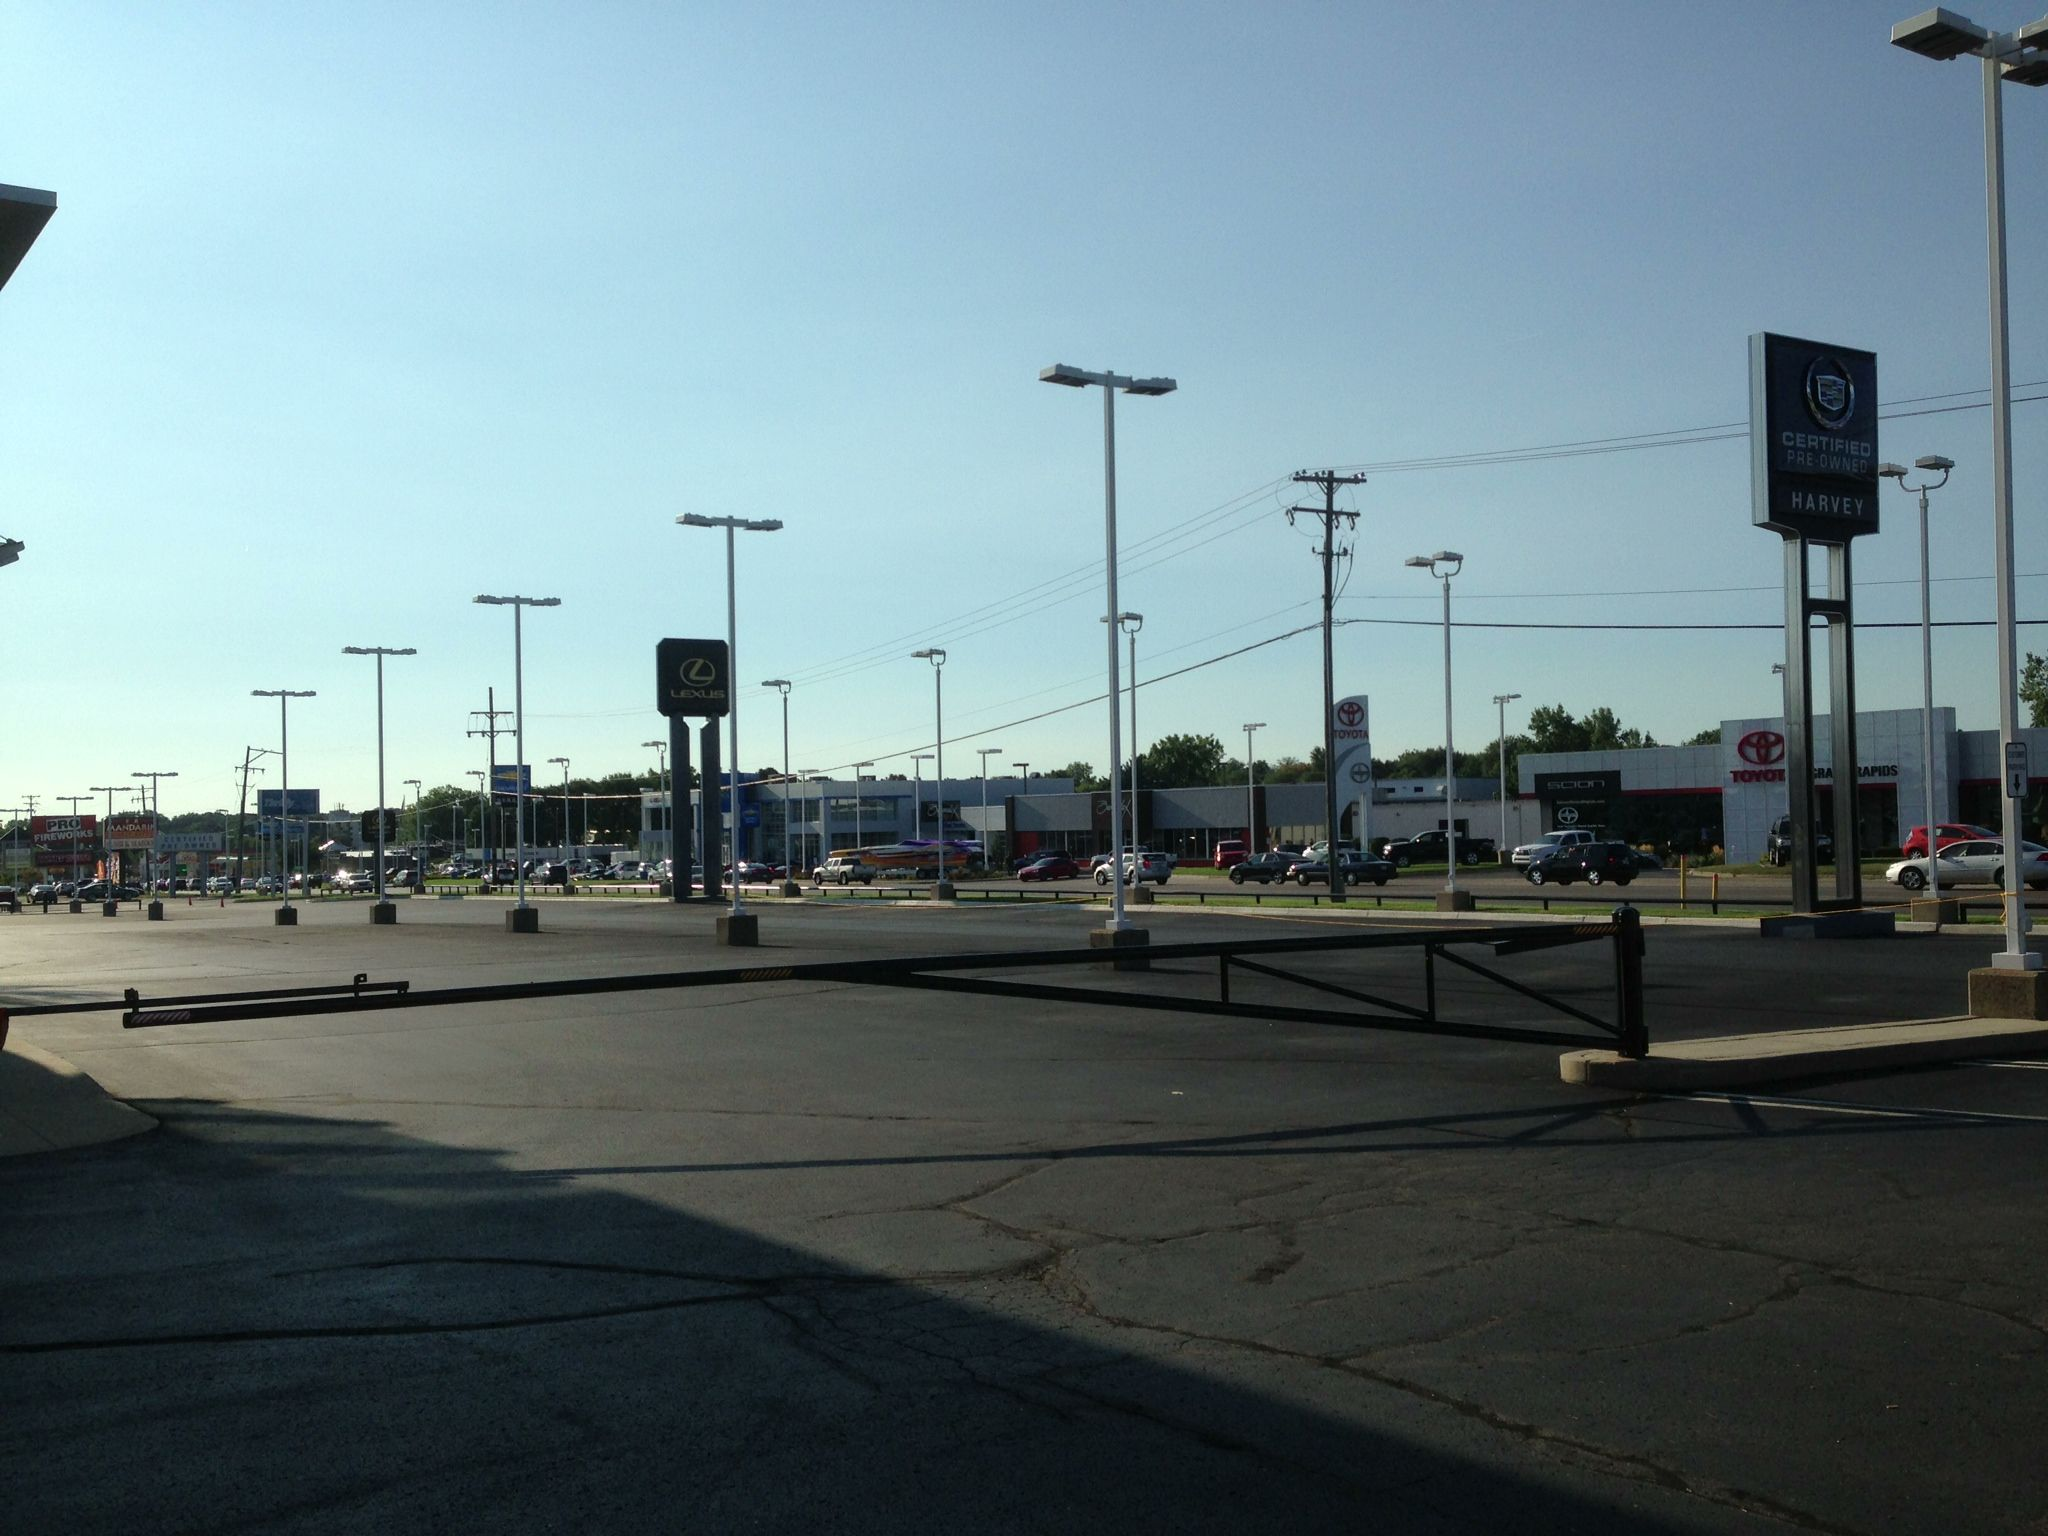 The Friday prior to the show, the entire front lot at Harvey Automotive is cleared! Friday, August 24, 2013